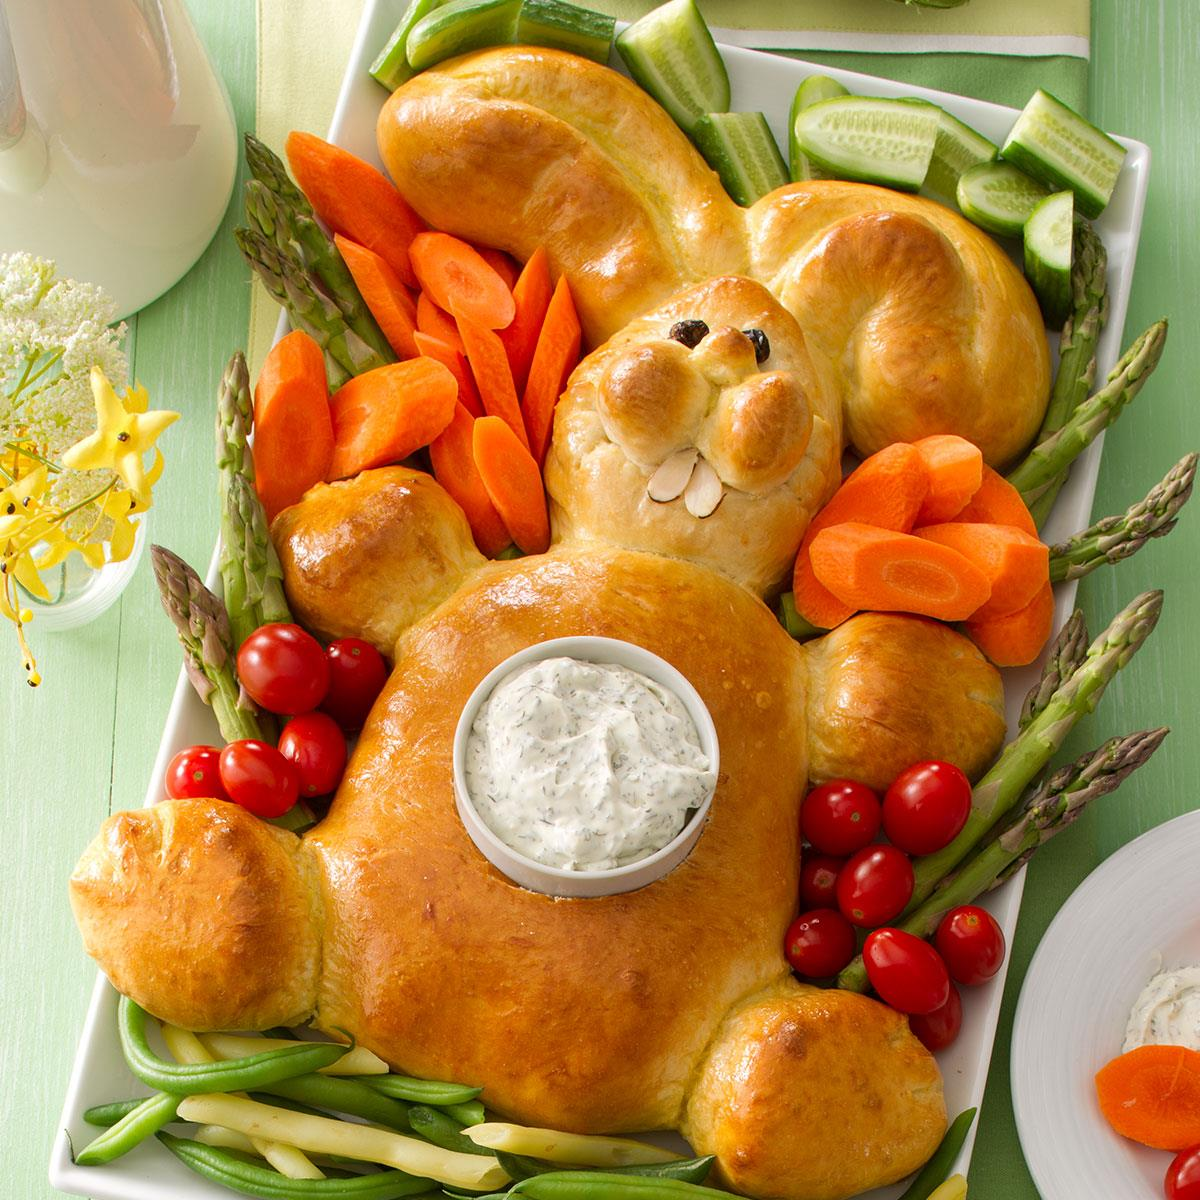 Easter is a great time to gather together friends and family and enjoy the very best food and wines. Make Sunday lunch something special by mixing and matching our favourite Easter recipes. For even more ideas, have a look at our Easter recipe collection.